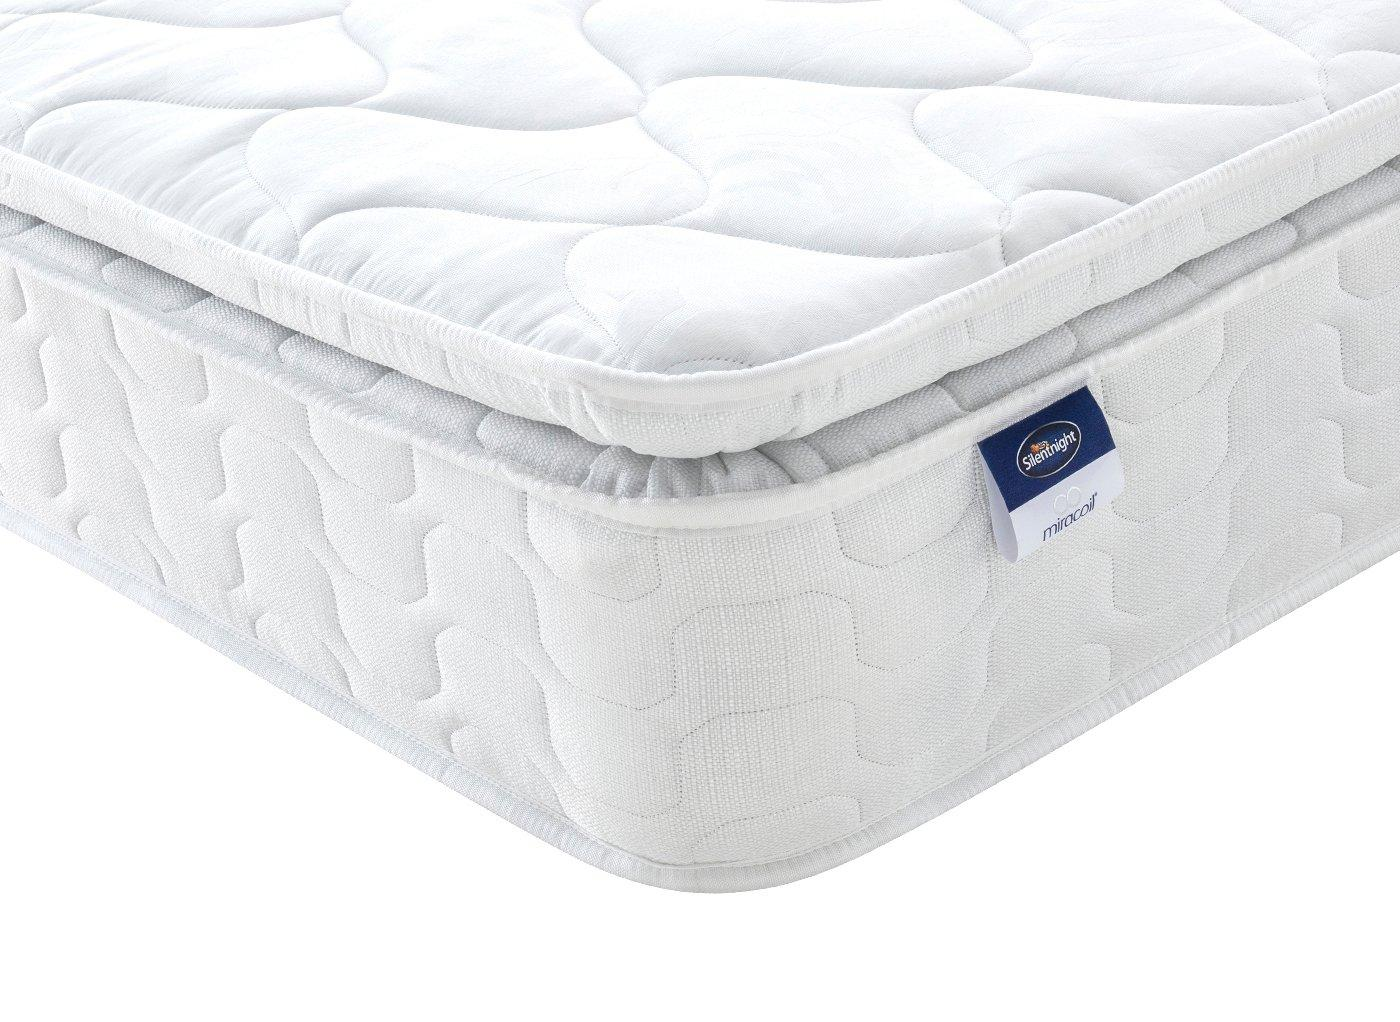 Silentnight Chesham Miracoil Mattress